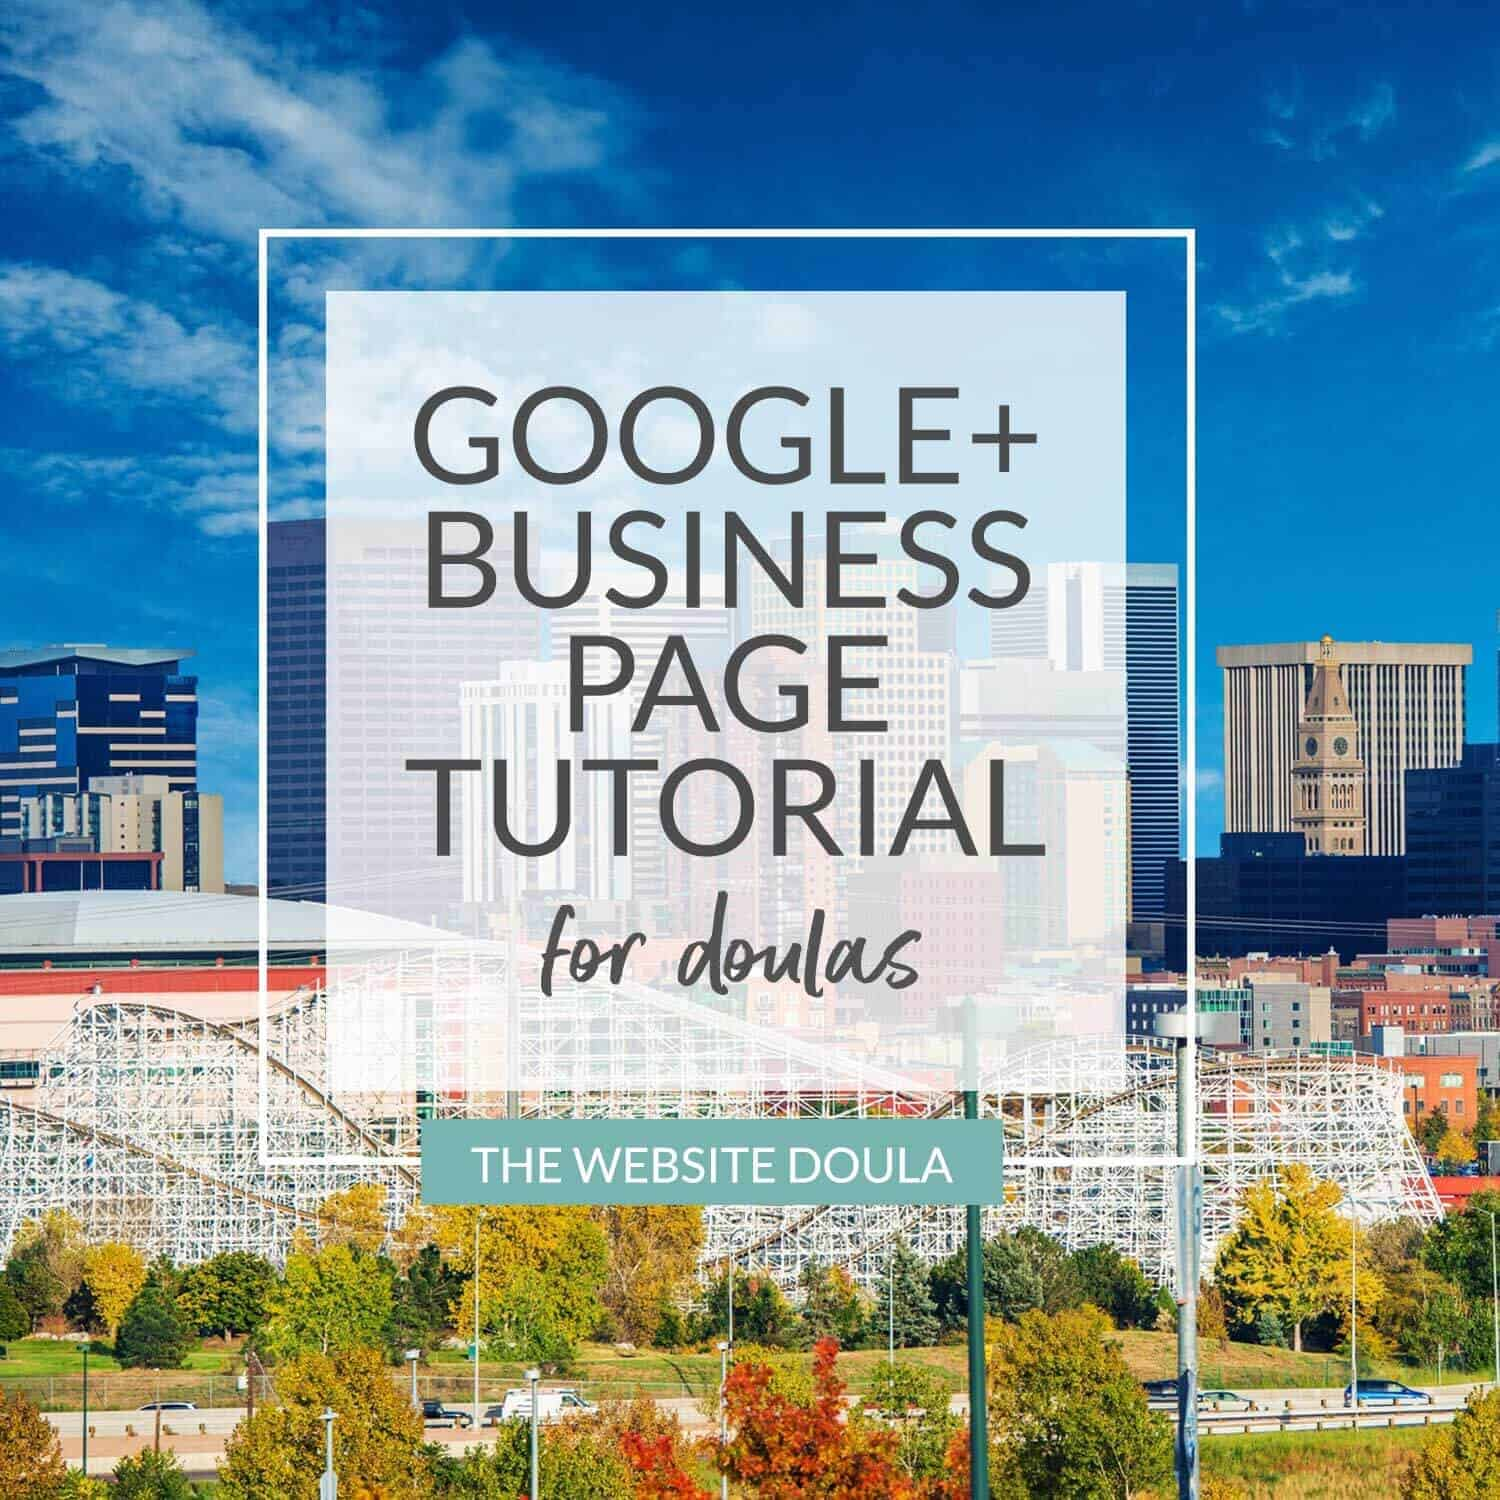 Doula Google Plus Business page tutorial